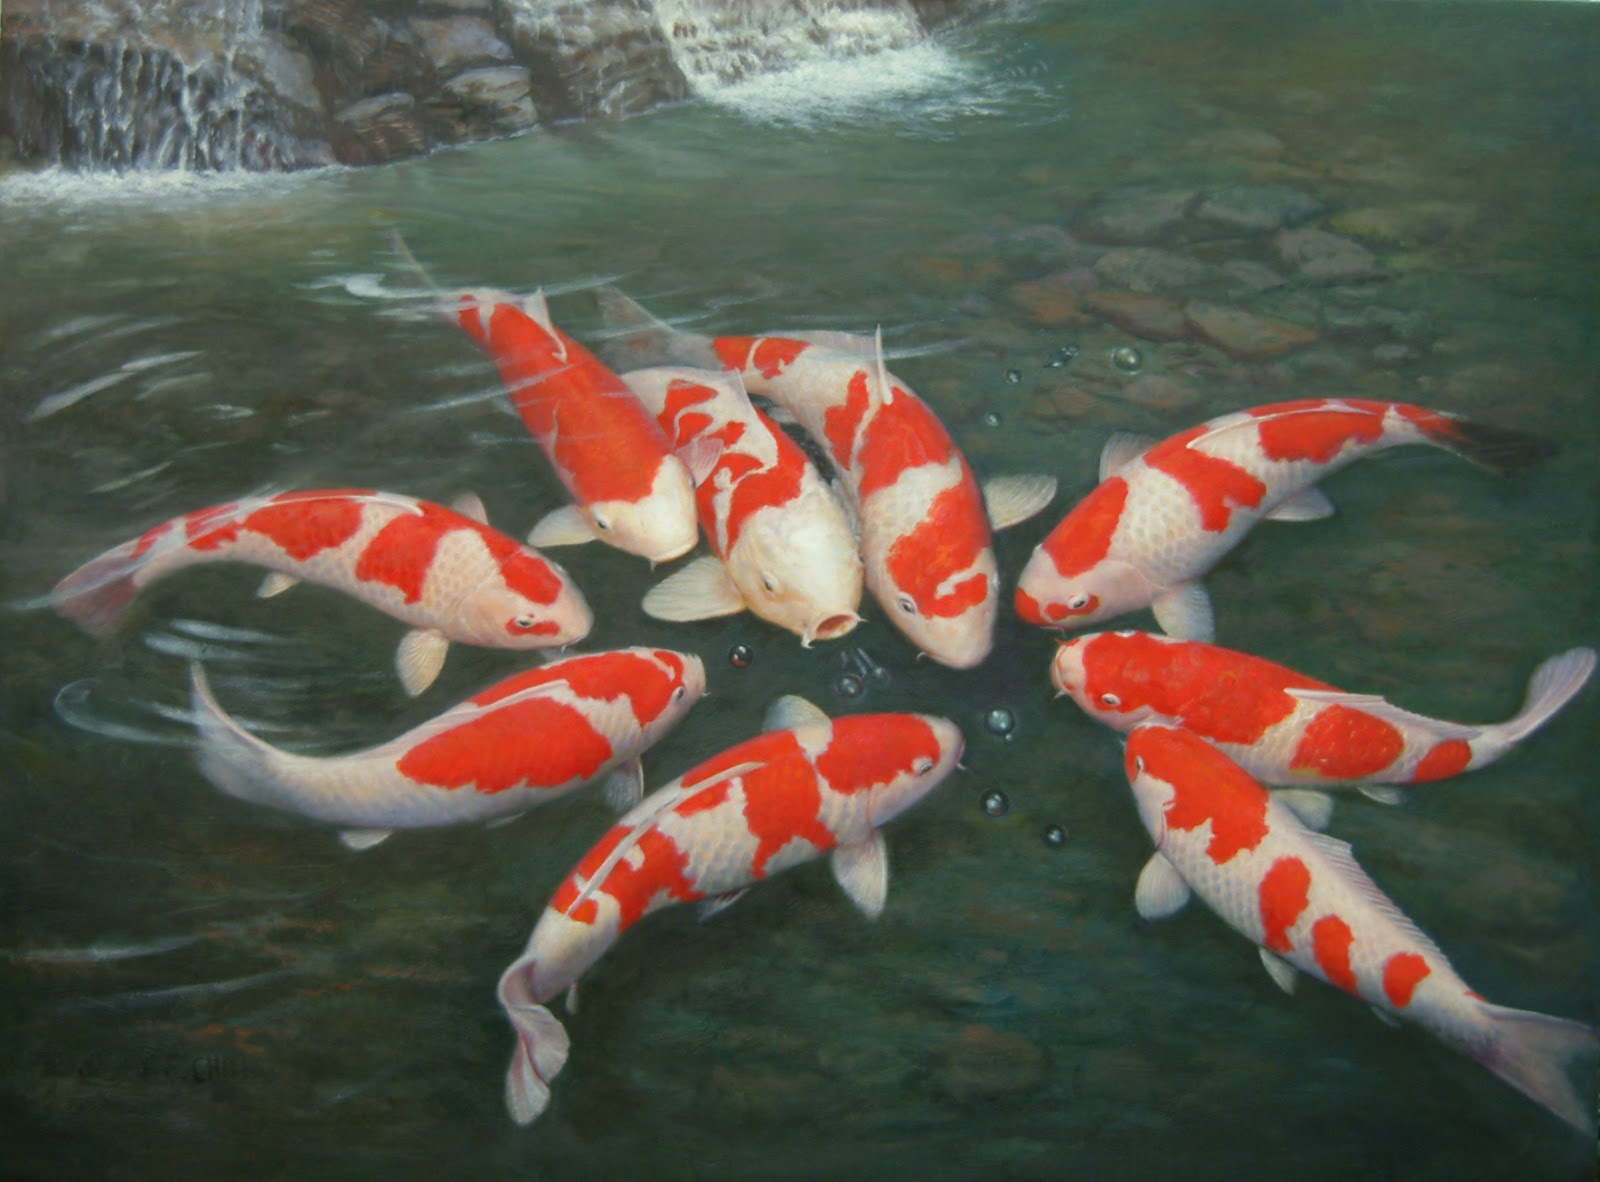 Koi aquarium fish koi koi koi la de koi coy koi koi fish for Carp in a fish tank